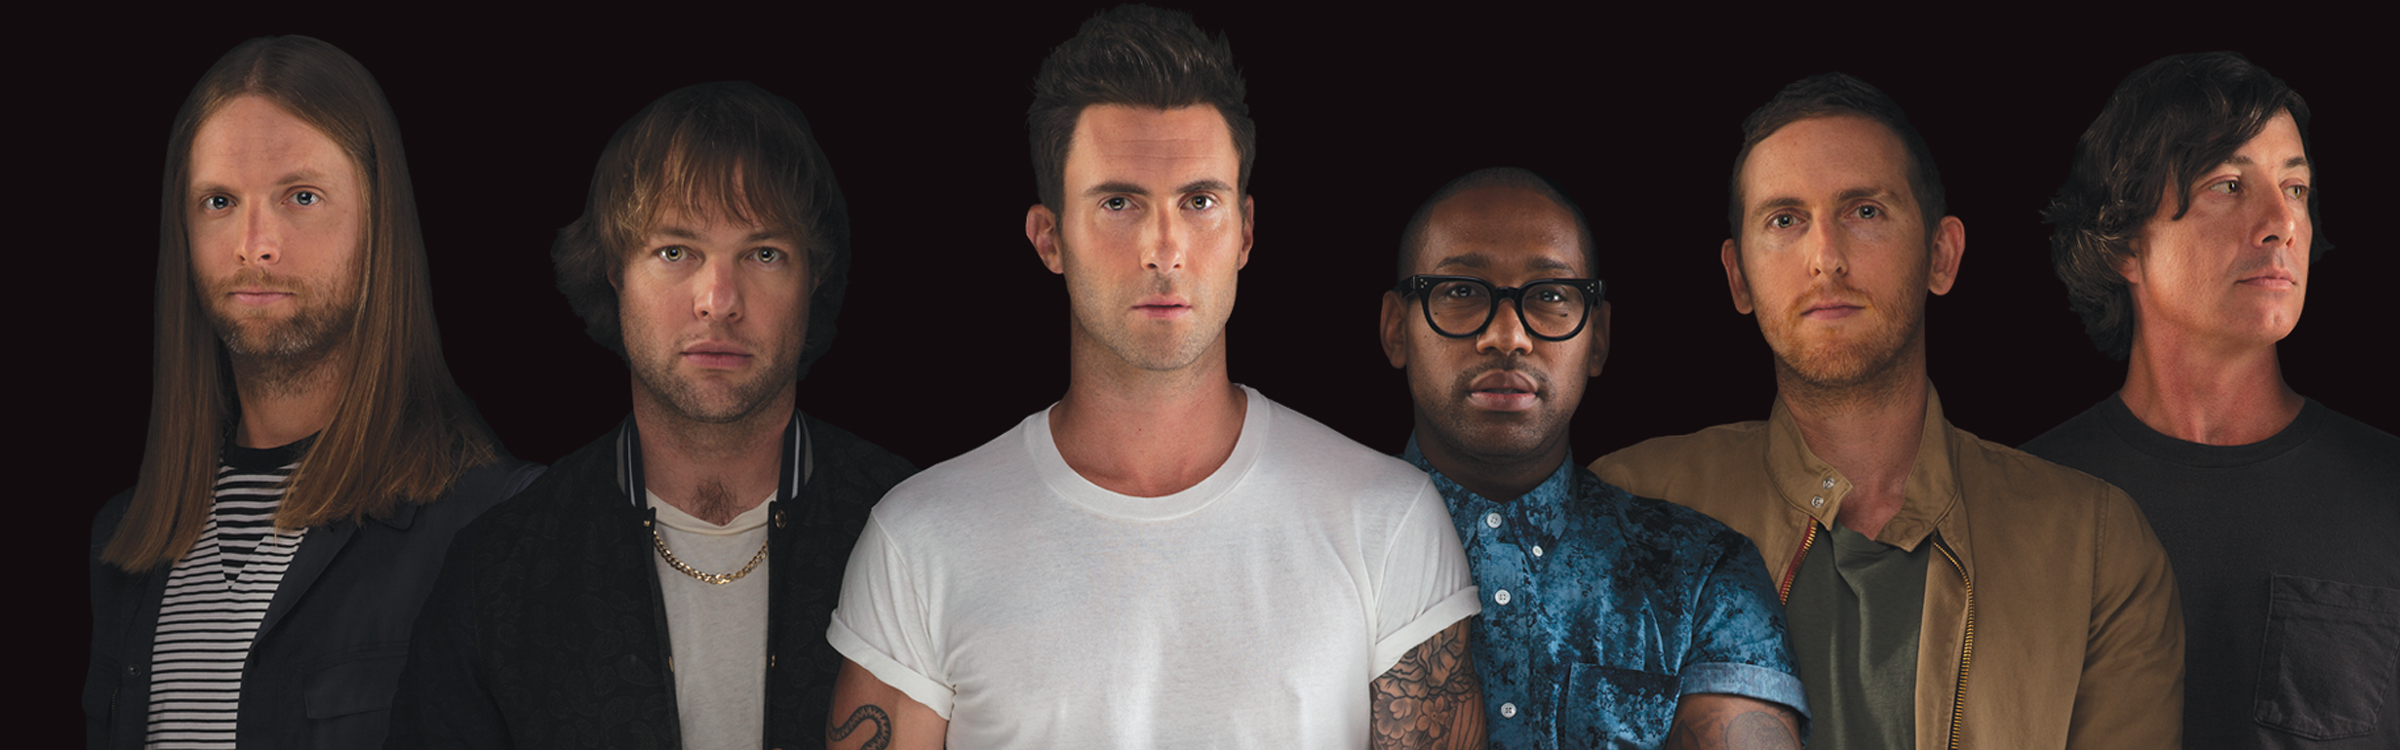 Maroon5 new single header